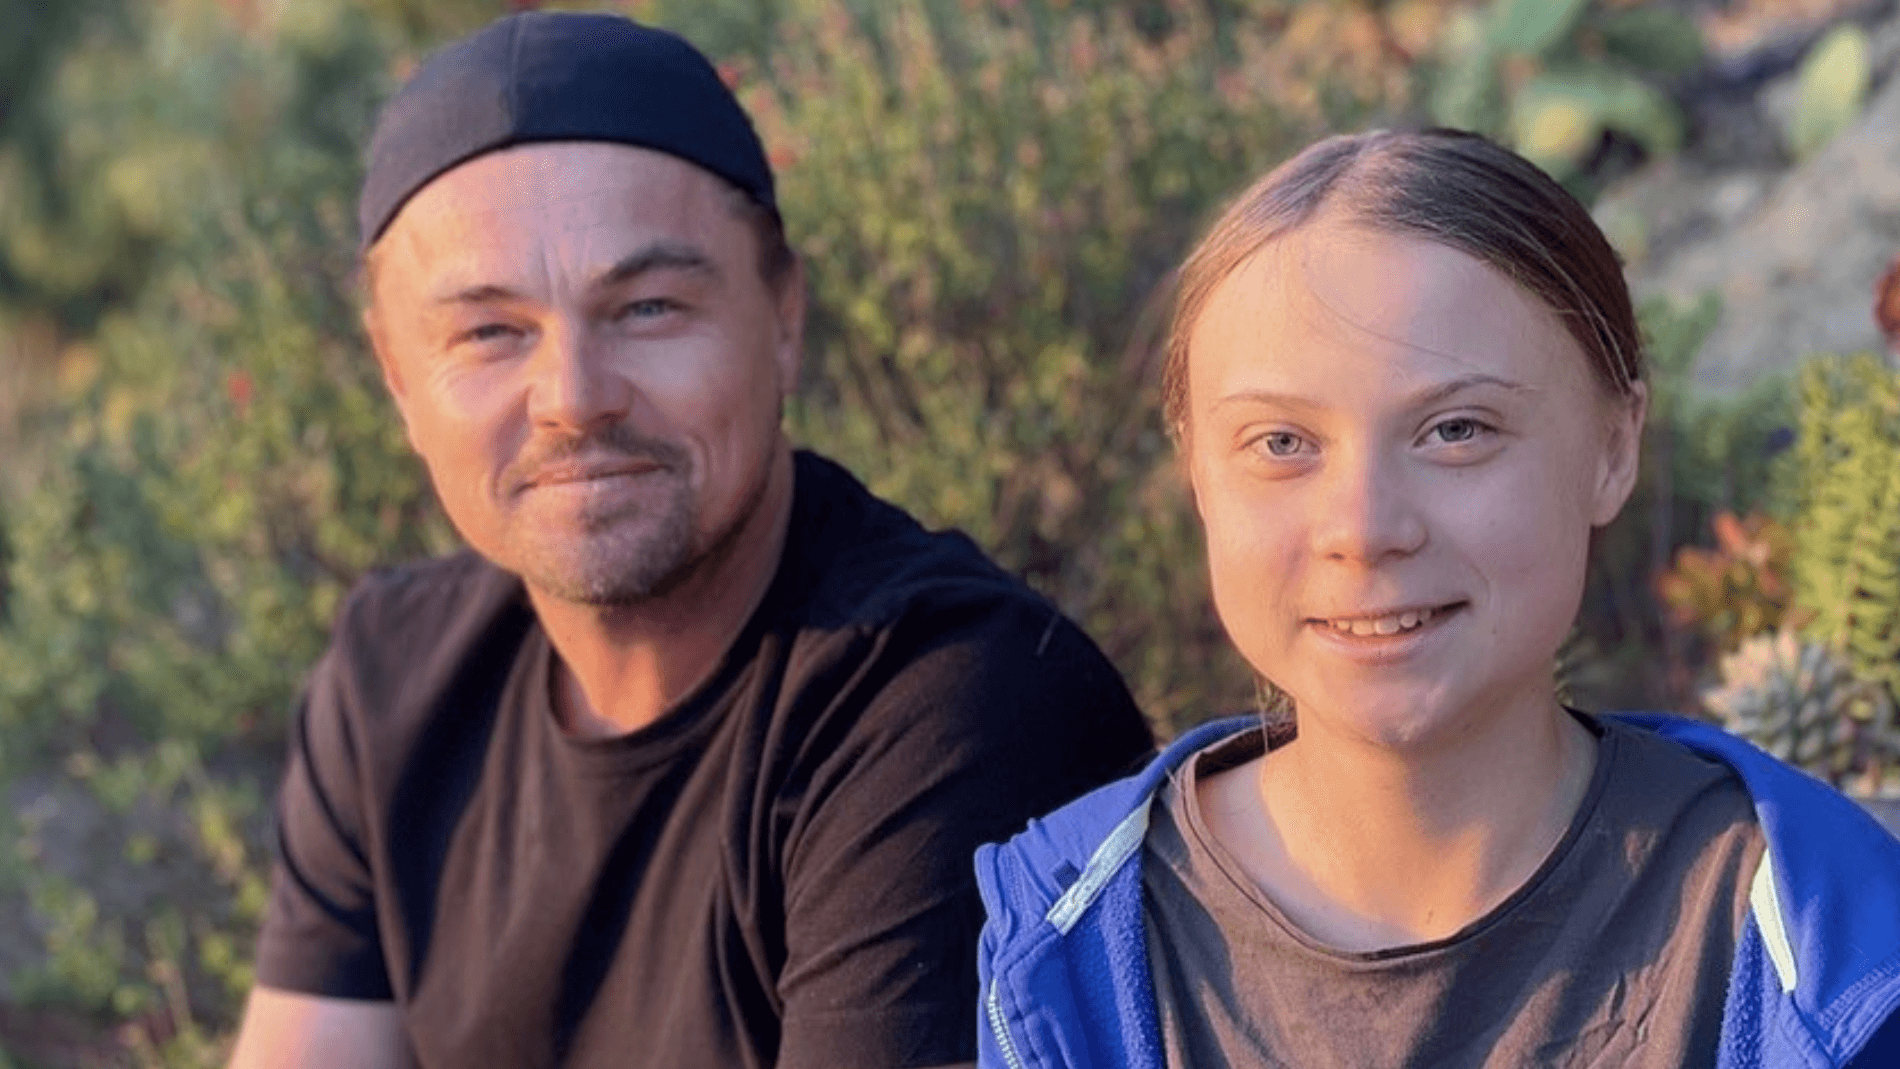 Leonardo DiCaprio and Greta Thunberg Team Up to Stop the Climate Crisis